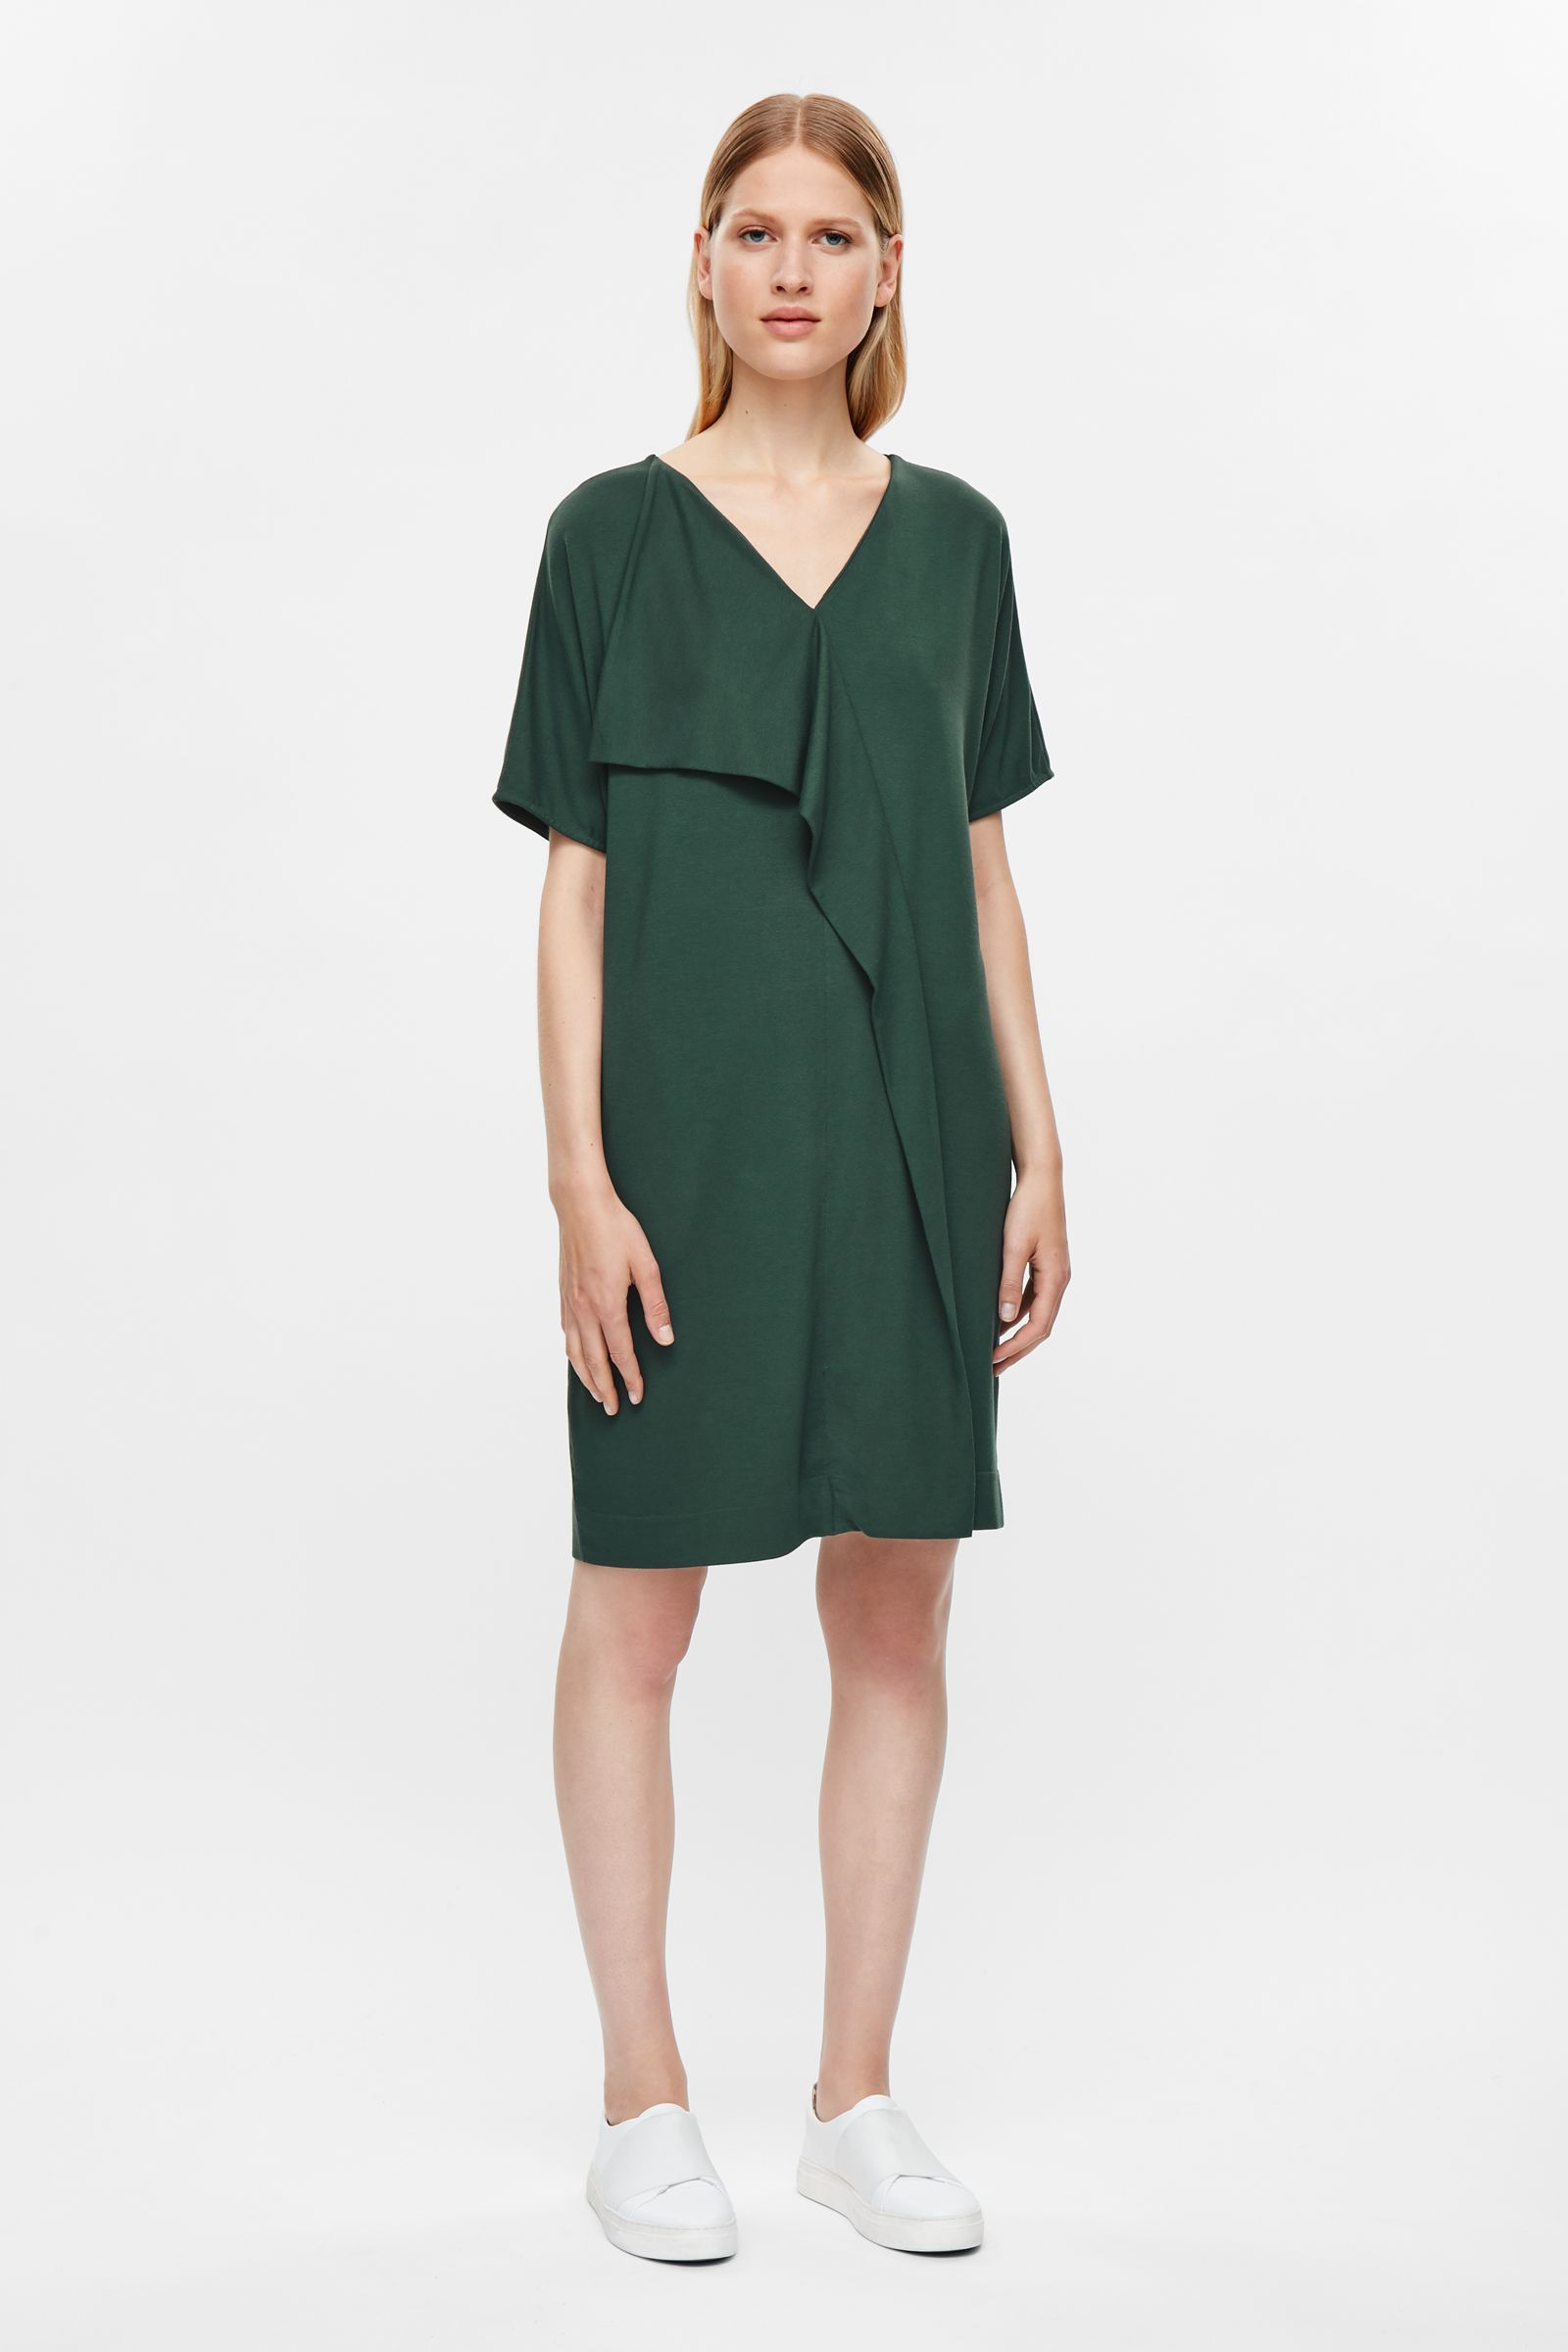 COS image 1 of Dress with asymmetric drape in Forest Green